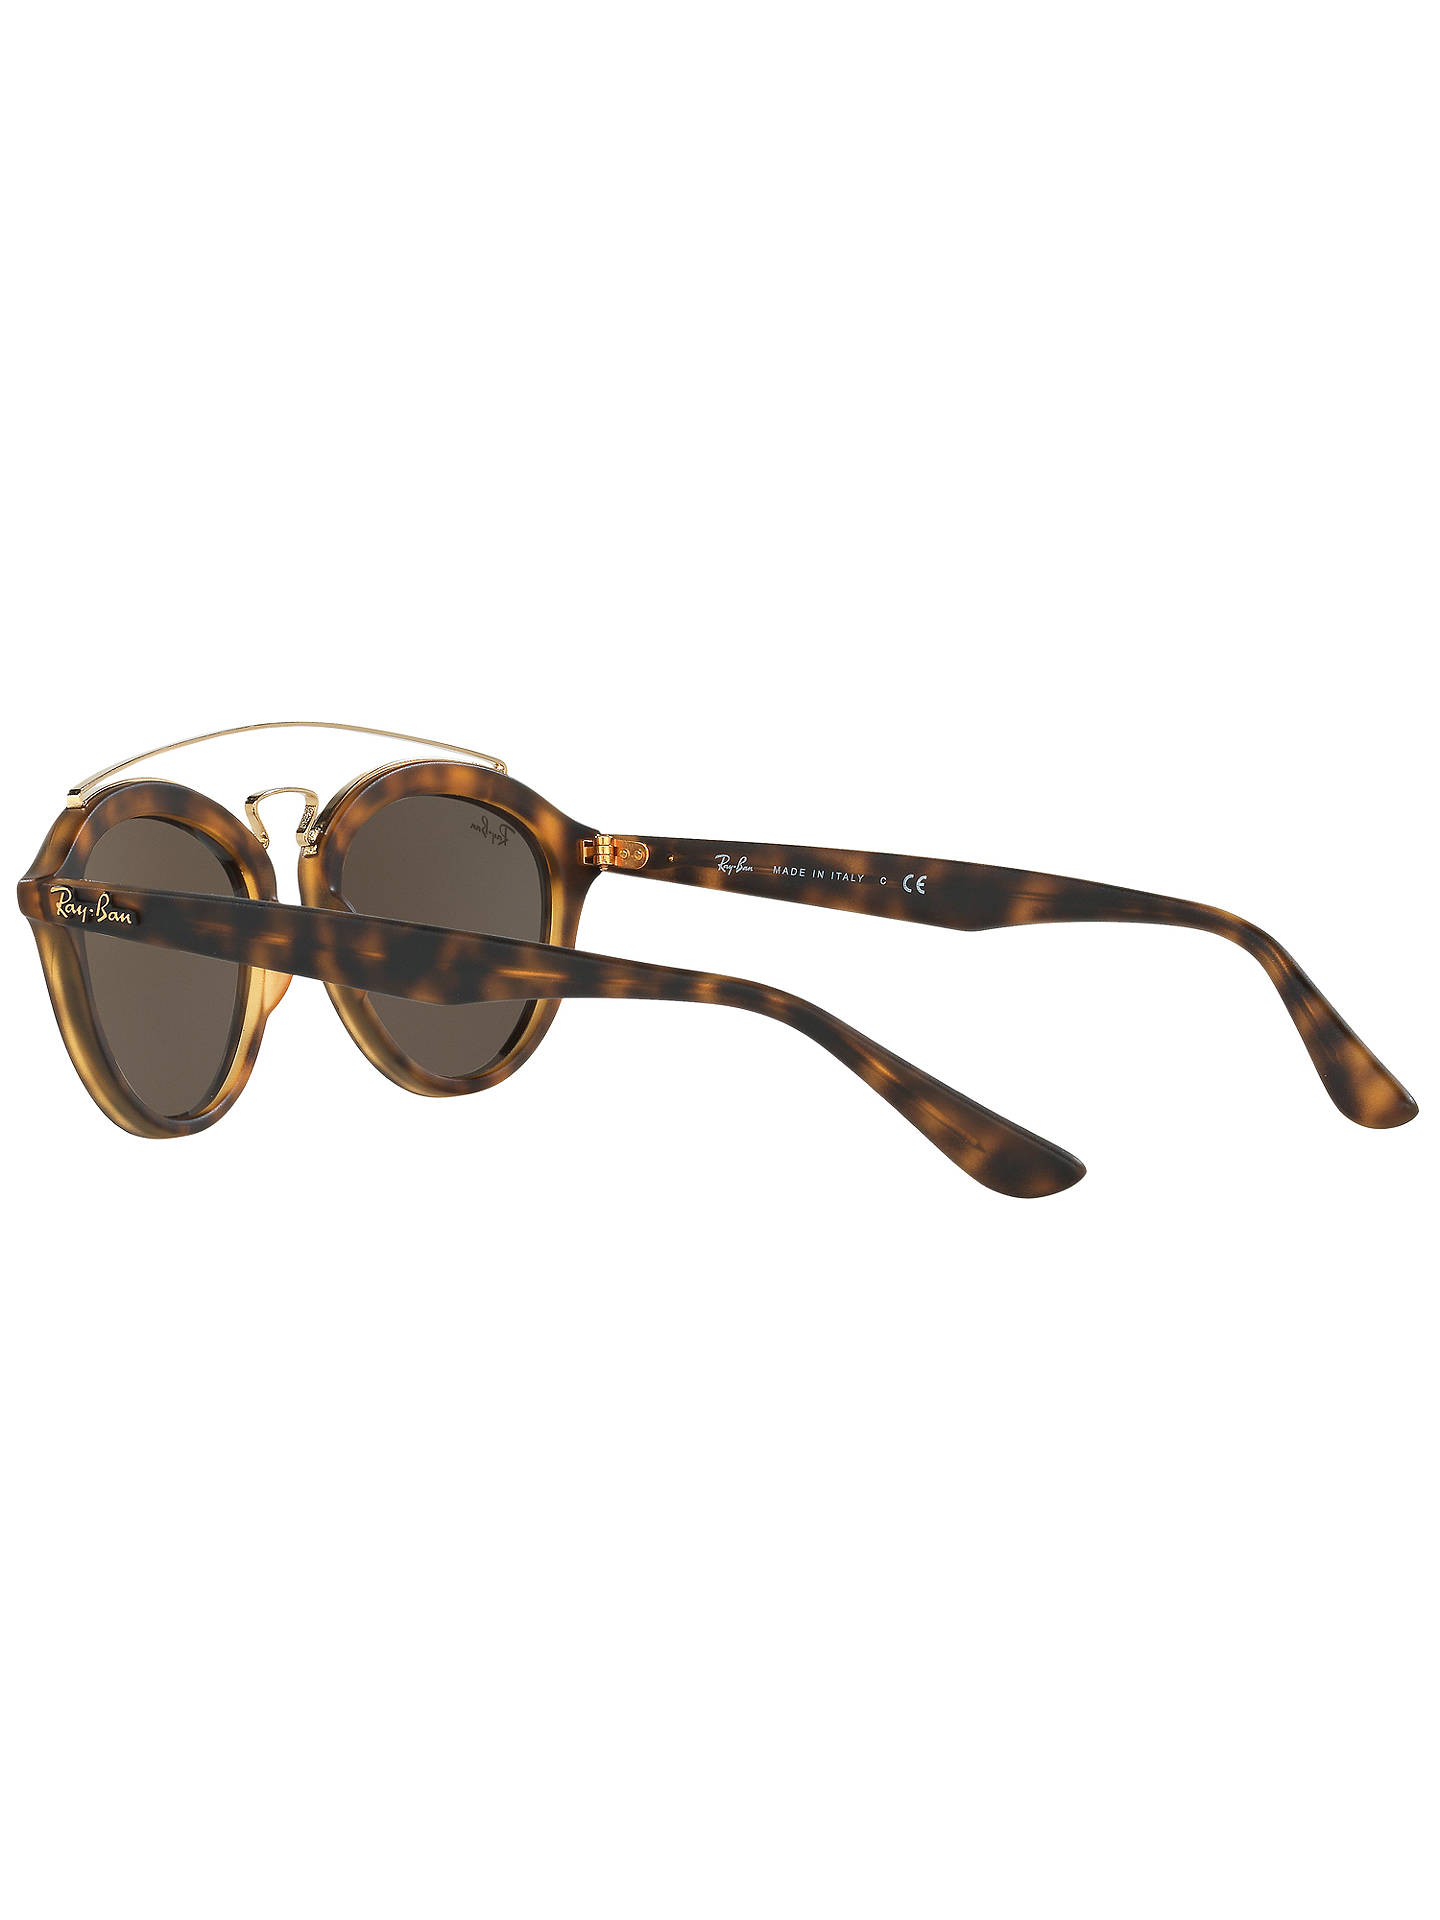 44c07512fc3 Ray-Ban RB4257 Oval Sunglasses at John Lewis   Partners